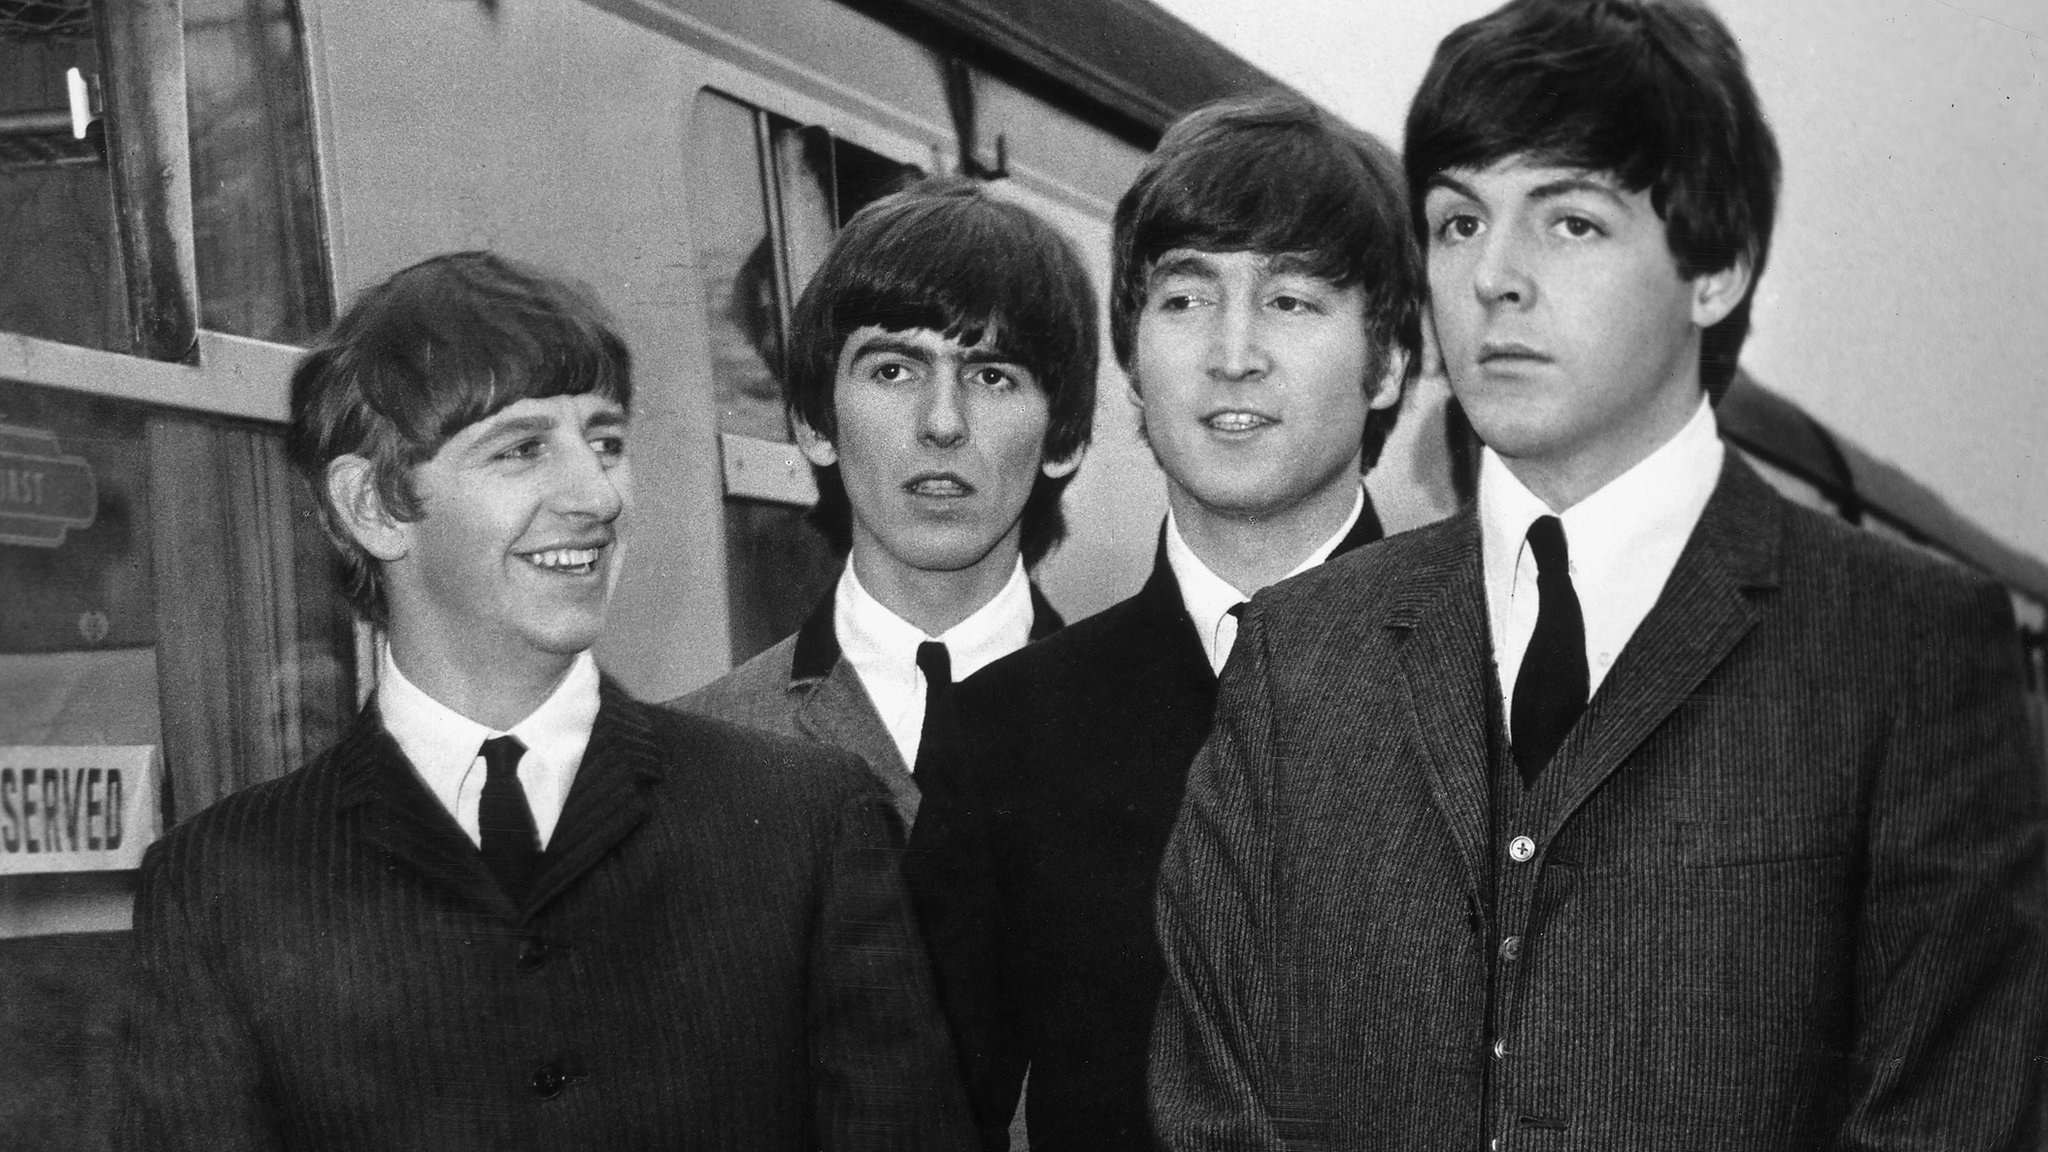 David V. Picker who brought Beatles to the big screen dies aged 87